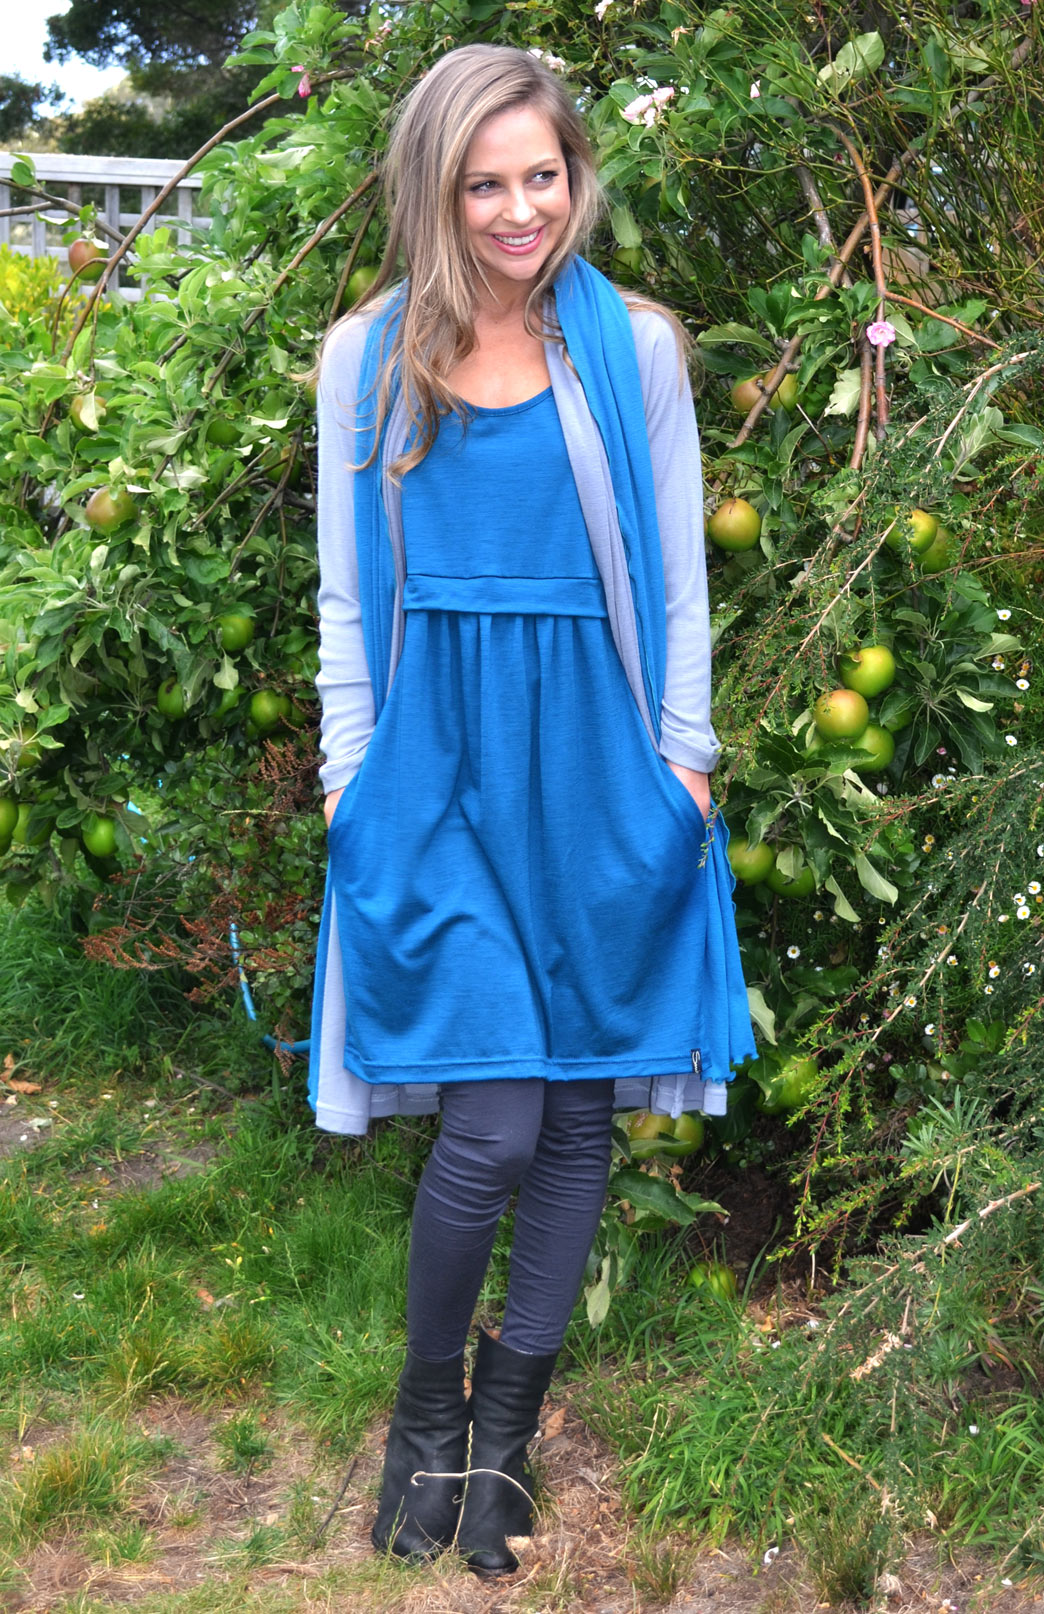 Tulip Dress - Women's Teal Merino Wool Fitted Tulip Dress with Side Pockets - Smitten Merino Tasmania Australia